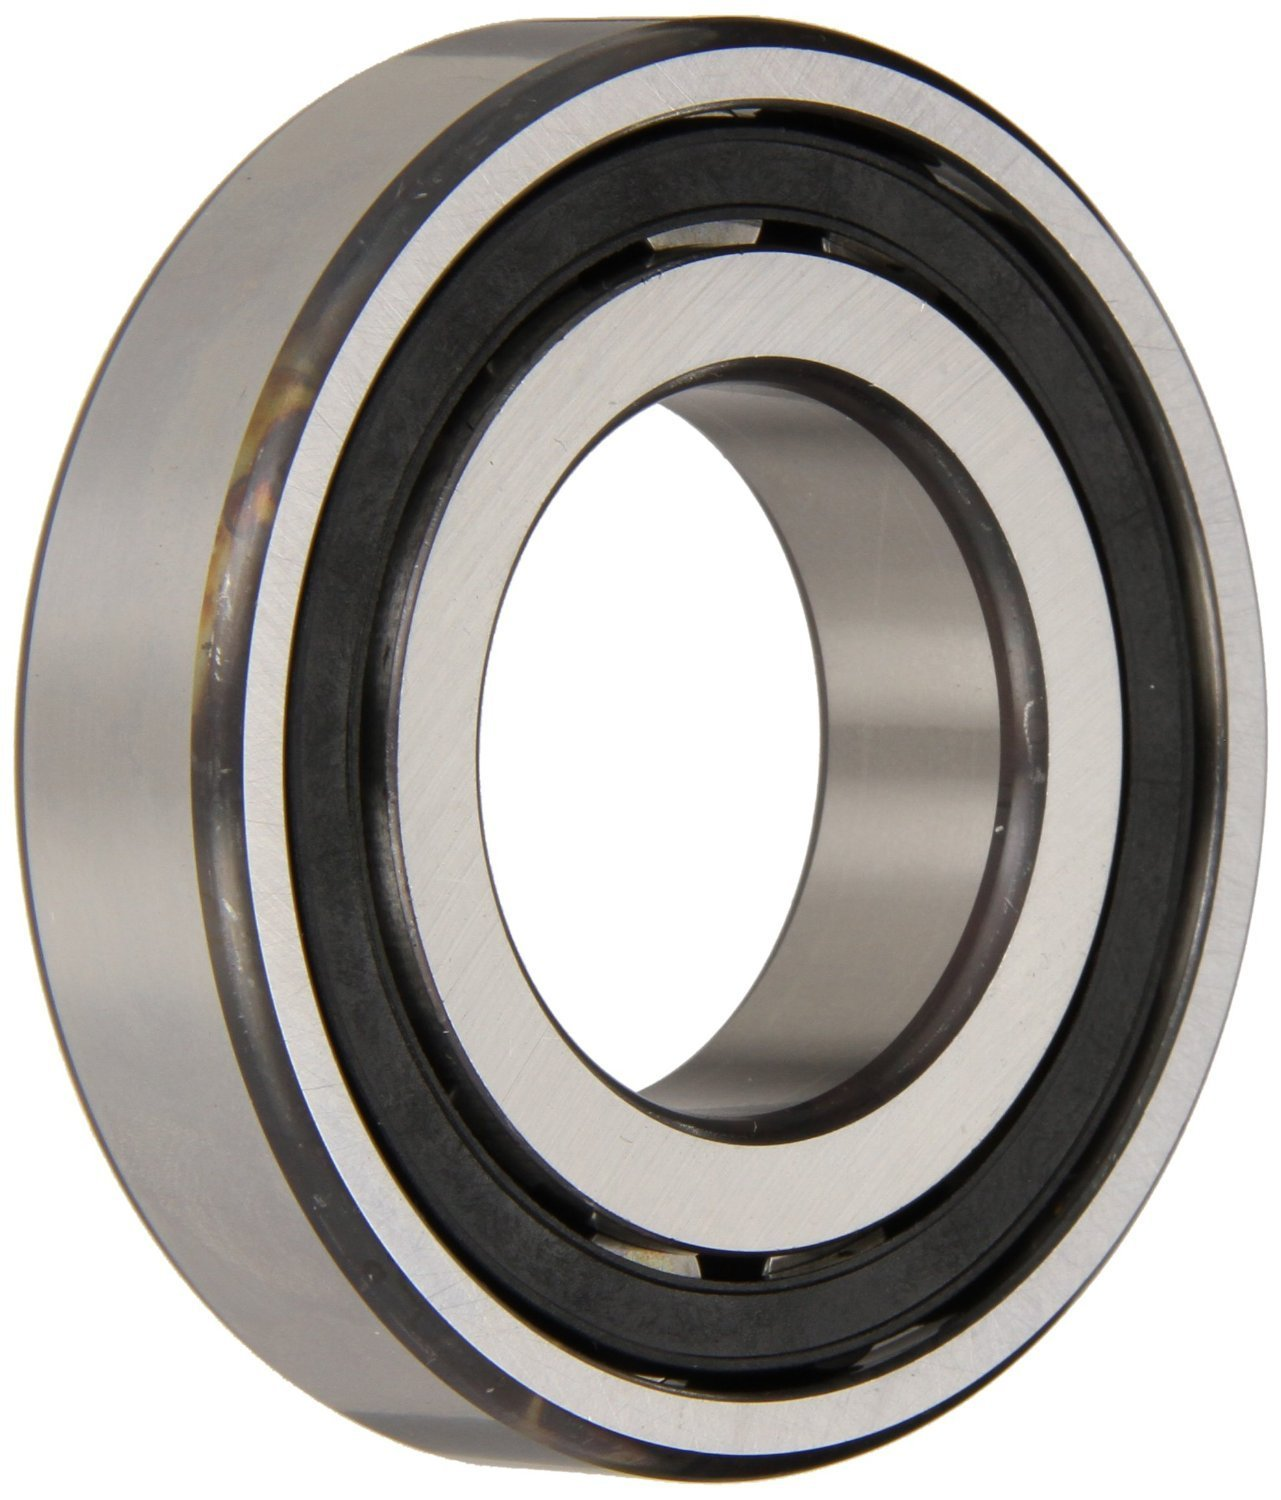 FAG 20211K-T-C3 Spherical Barrel Roller Bearing, Tapered Bore,  Polyamide/Nylon Cage, C3 Clearance, Metric, 55mm ID, 100mm OD, 21mm Width,  3400rpm Maximum ...